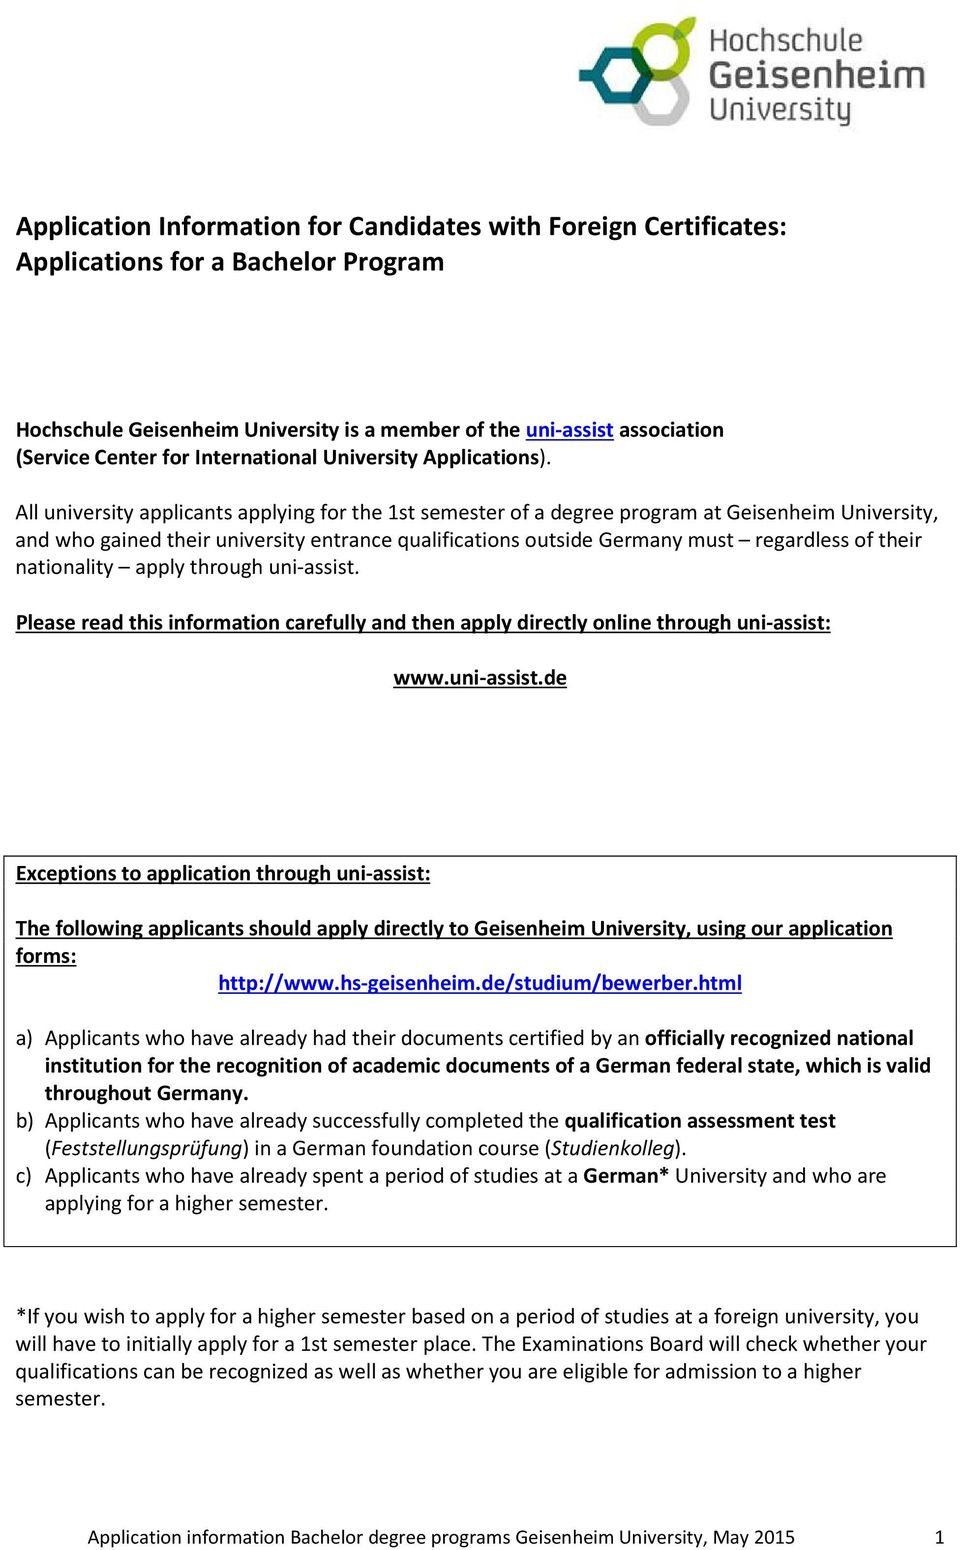 All university applicants applying for the 1st semester of a degree program at Geisenheim University, and who gained their university entrance qualifications outside Germany must regardless of their